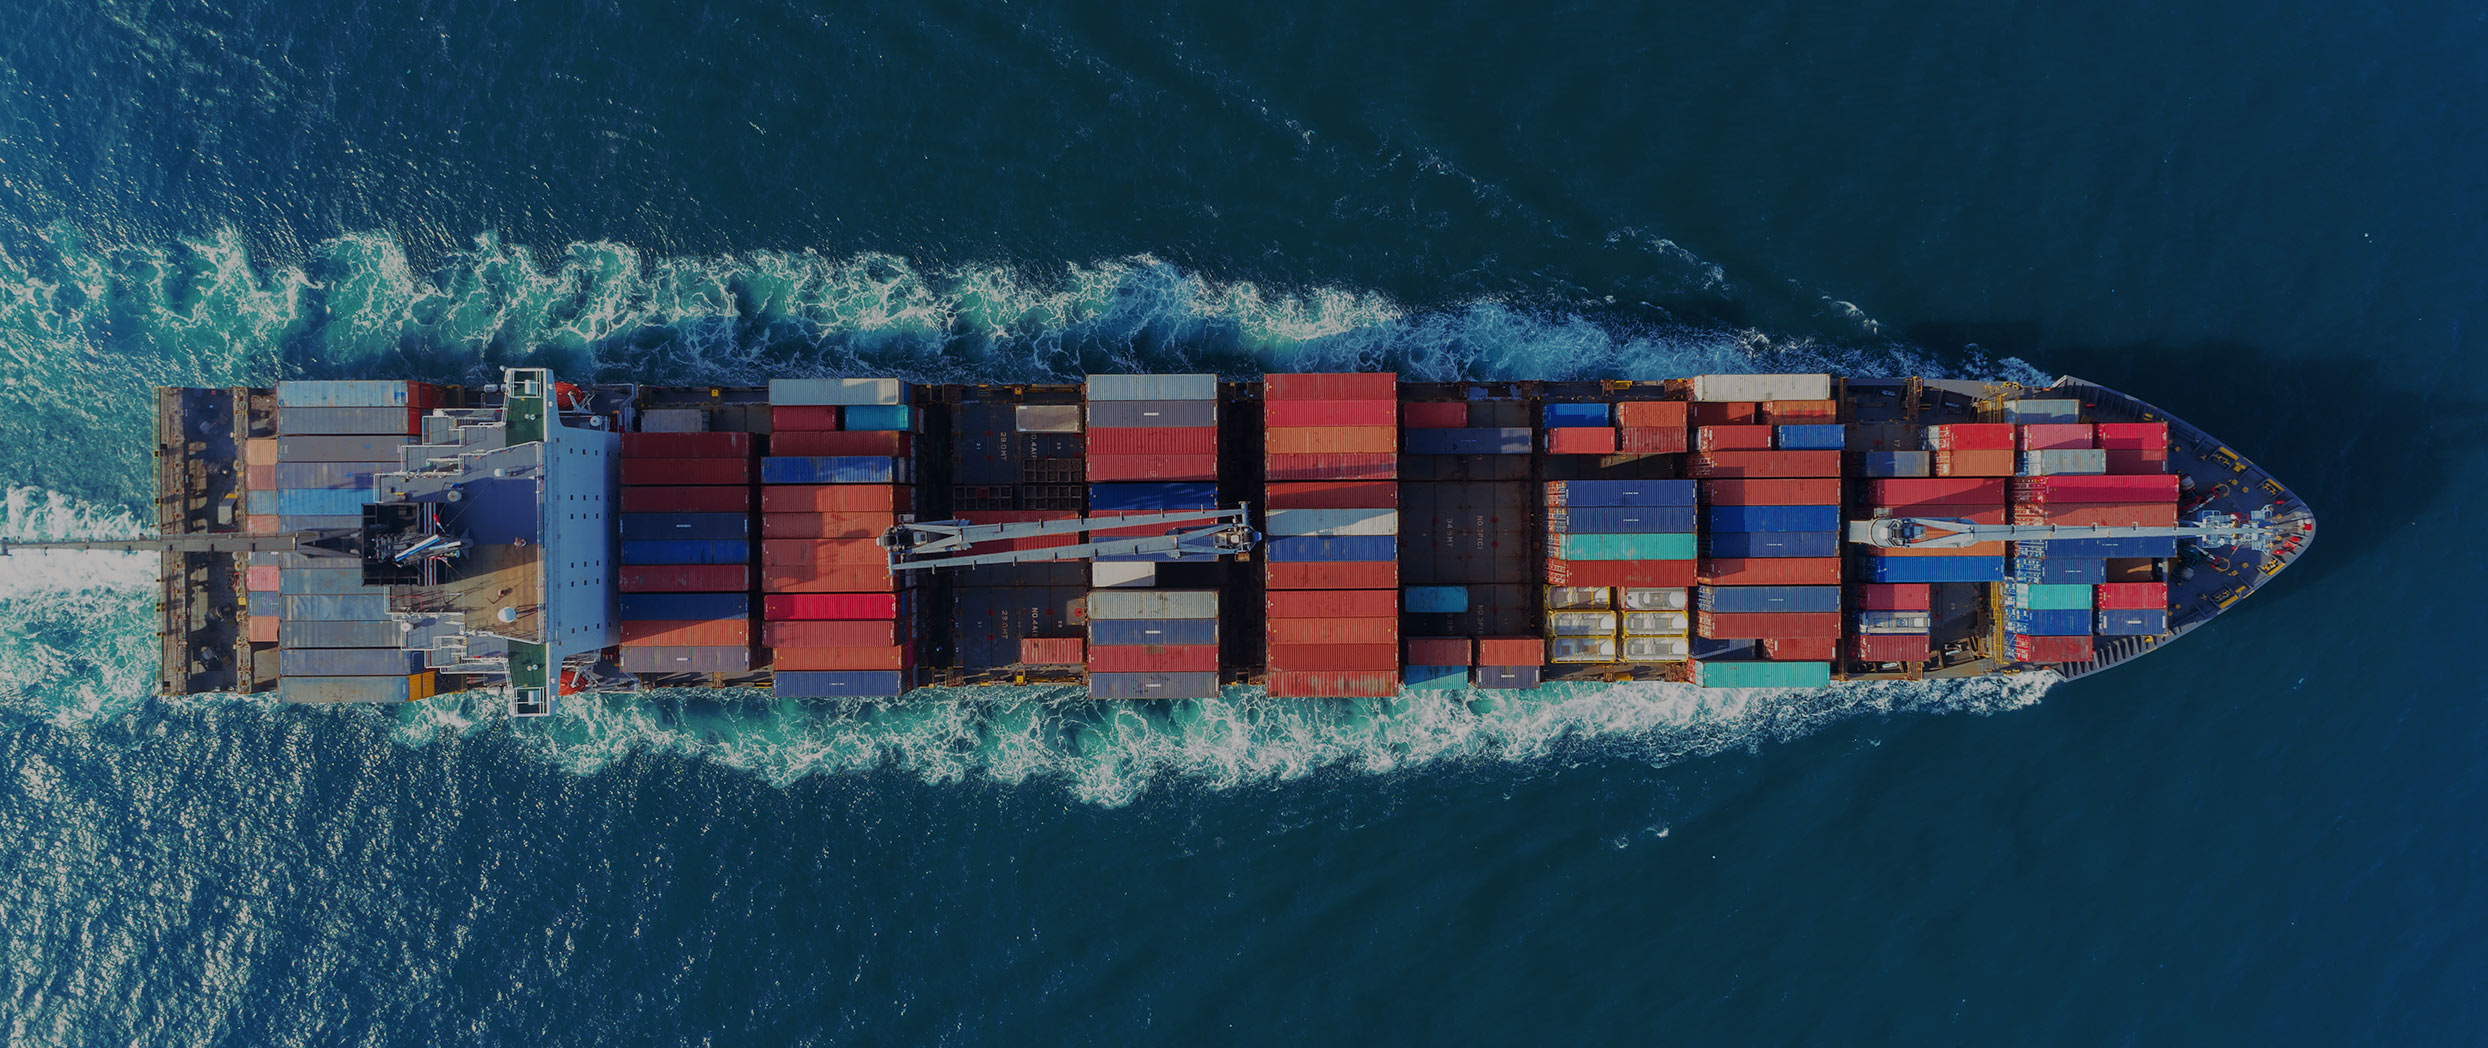 Cyberattack on Maersk: new pirates threatening maritime commerce